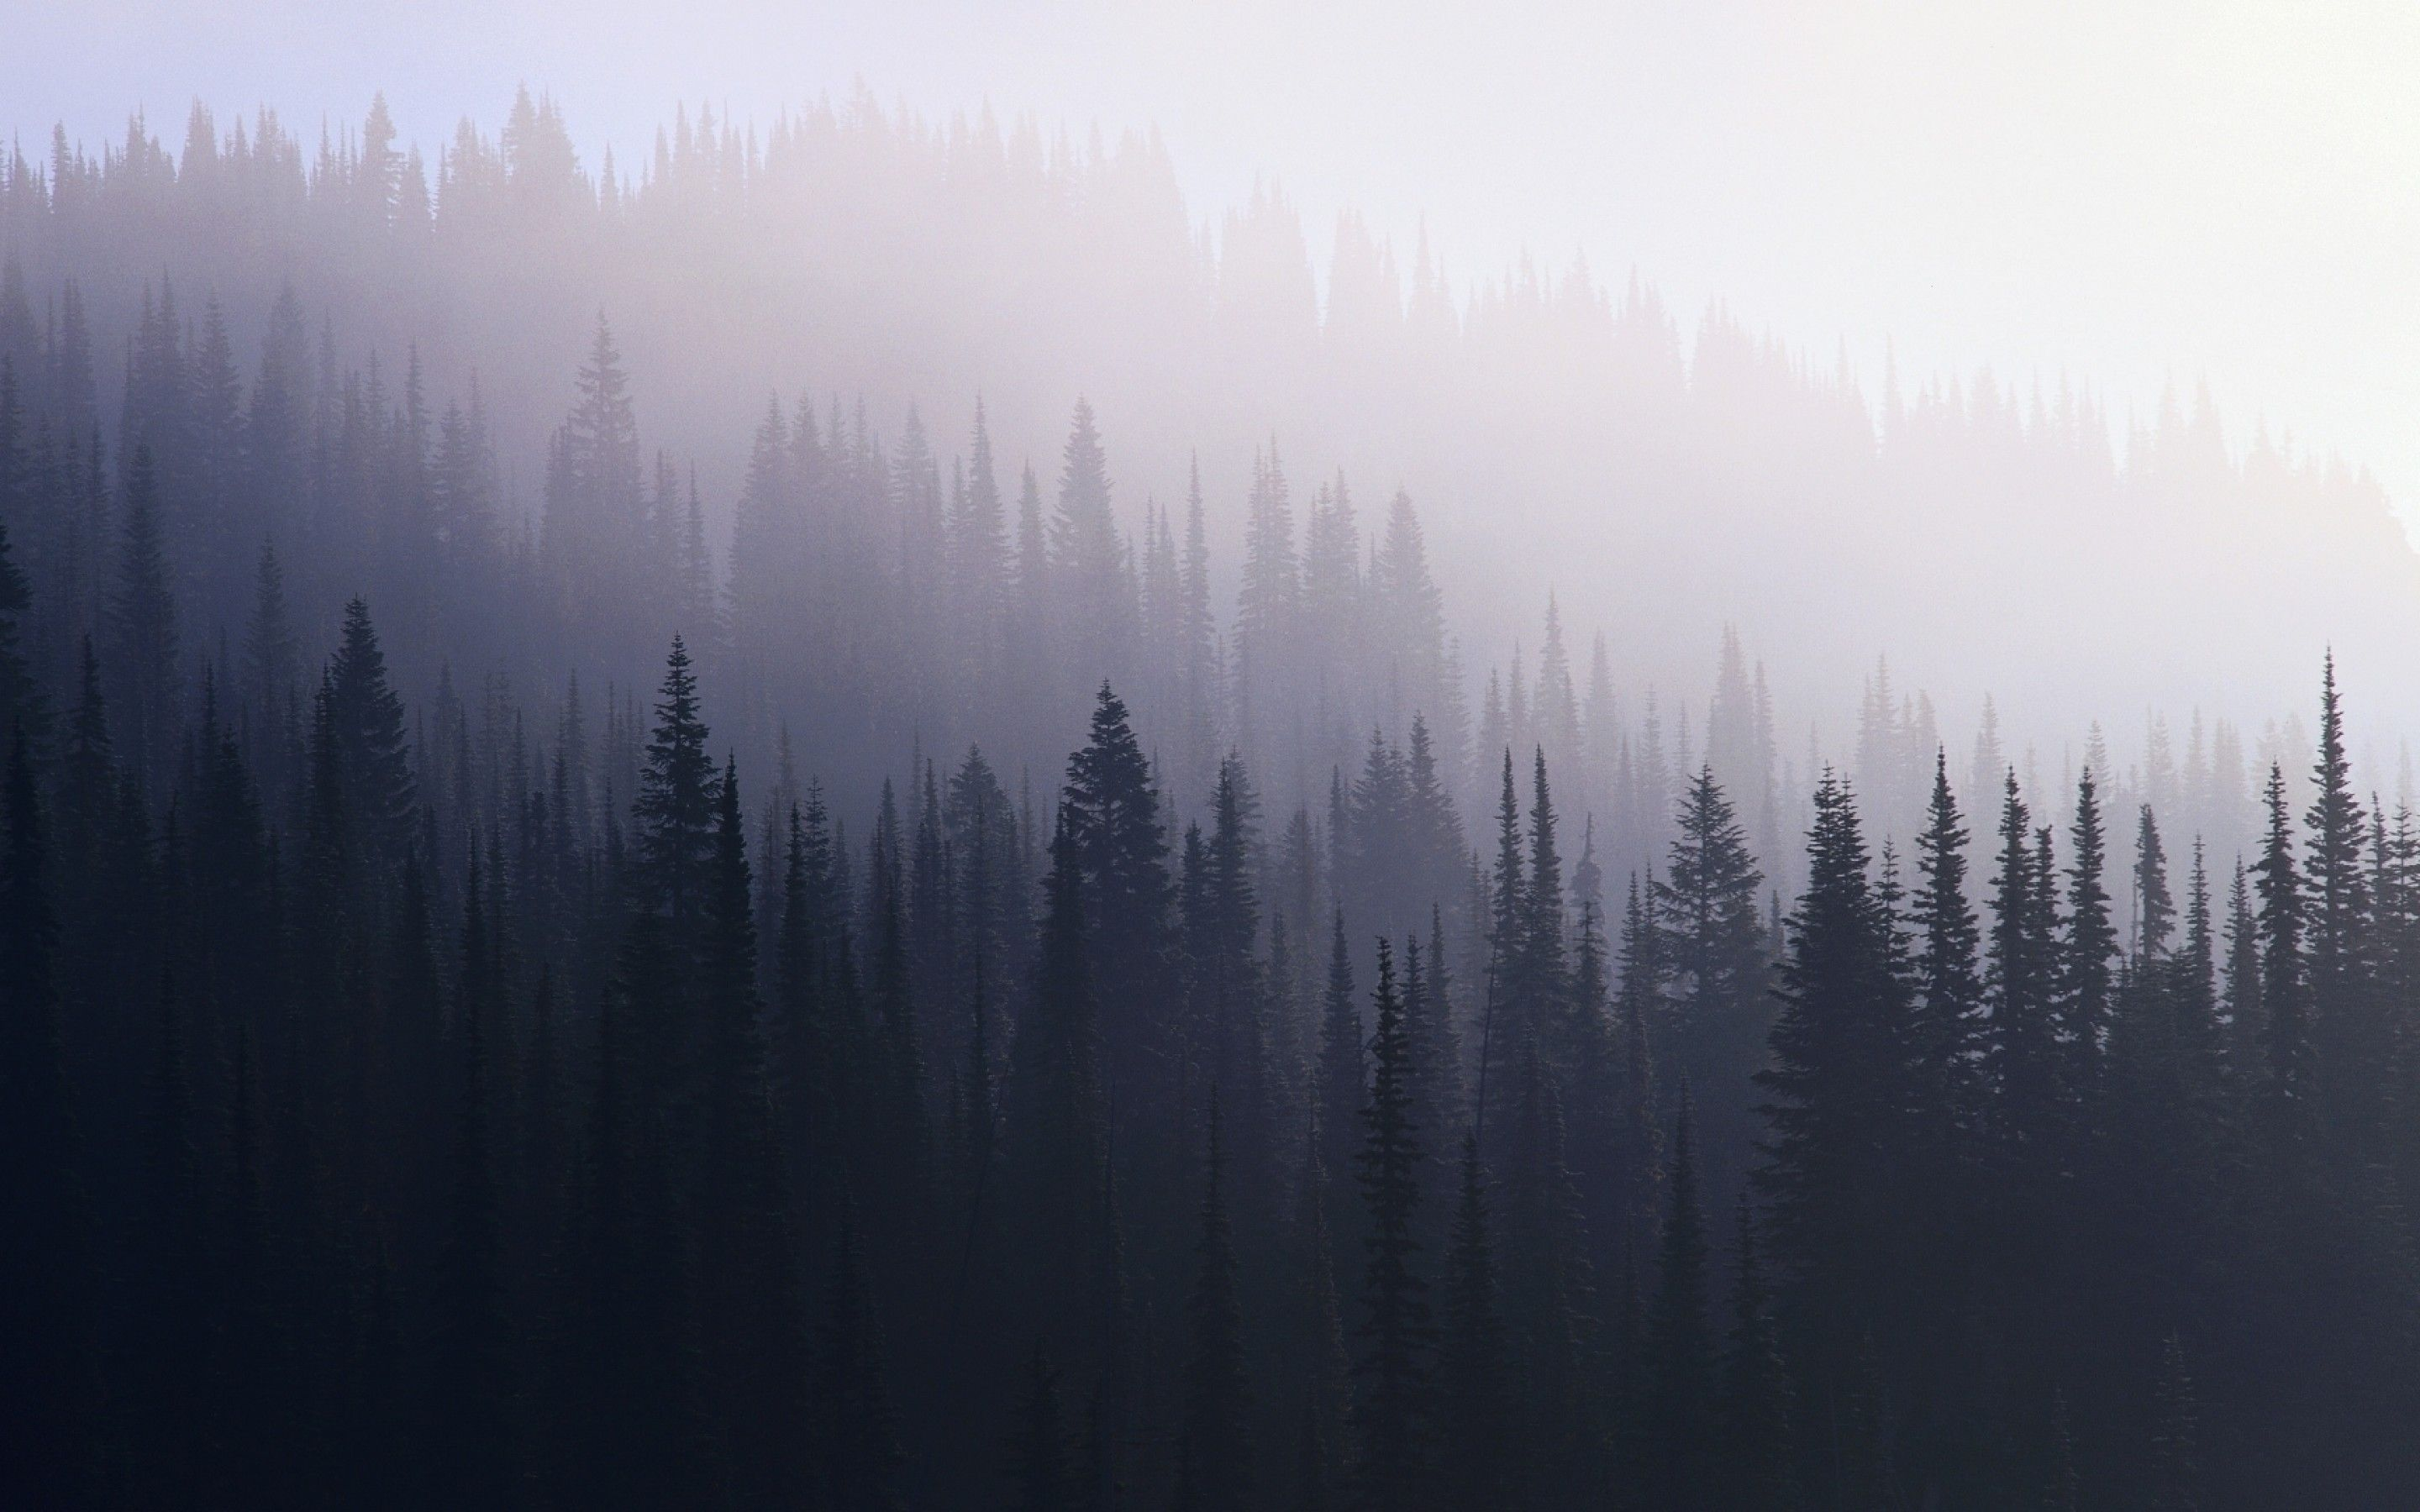 Dark Forest Wallpaper Hd | Natures Wallpapers | Pinterest ... Dark Forest Wallpapers Widescreen